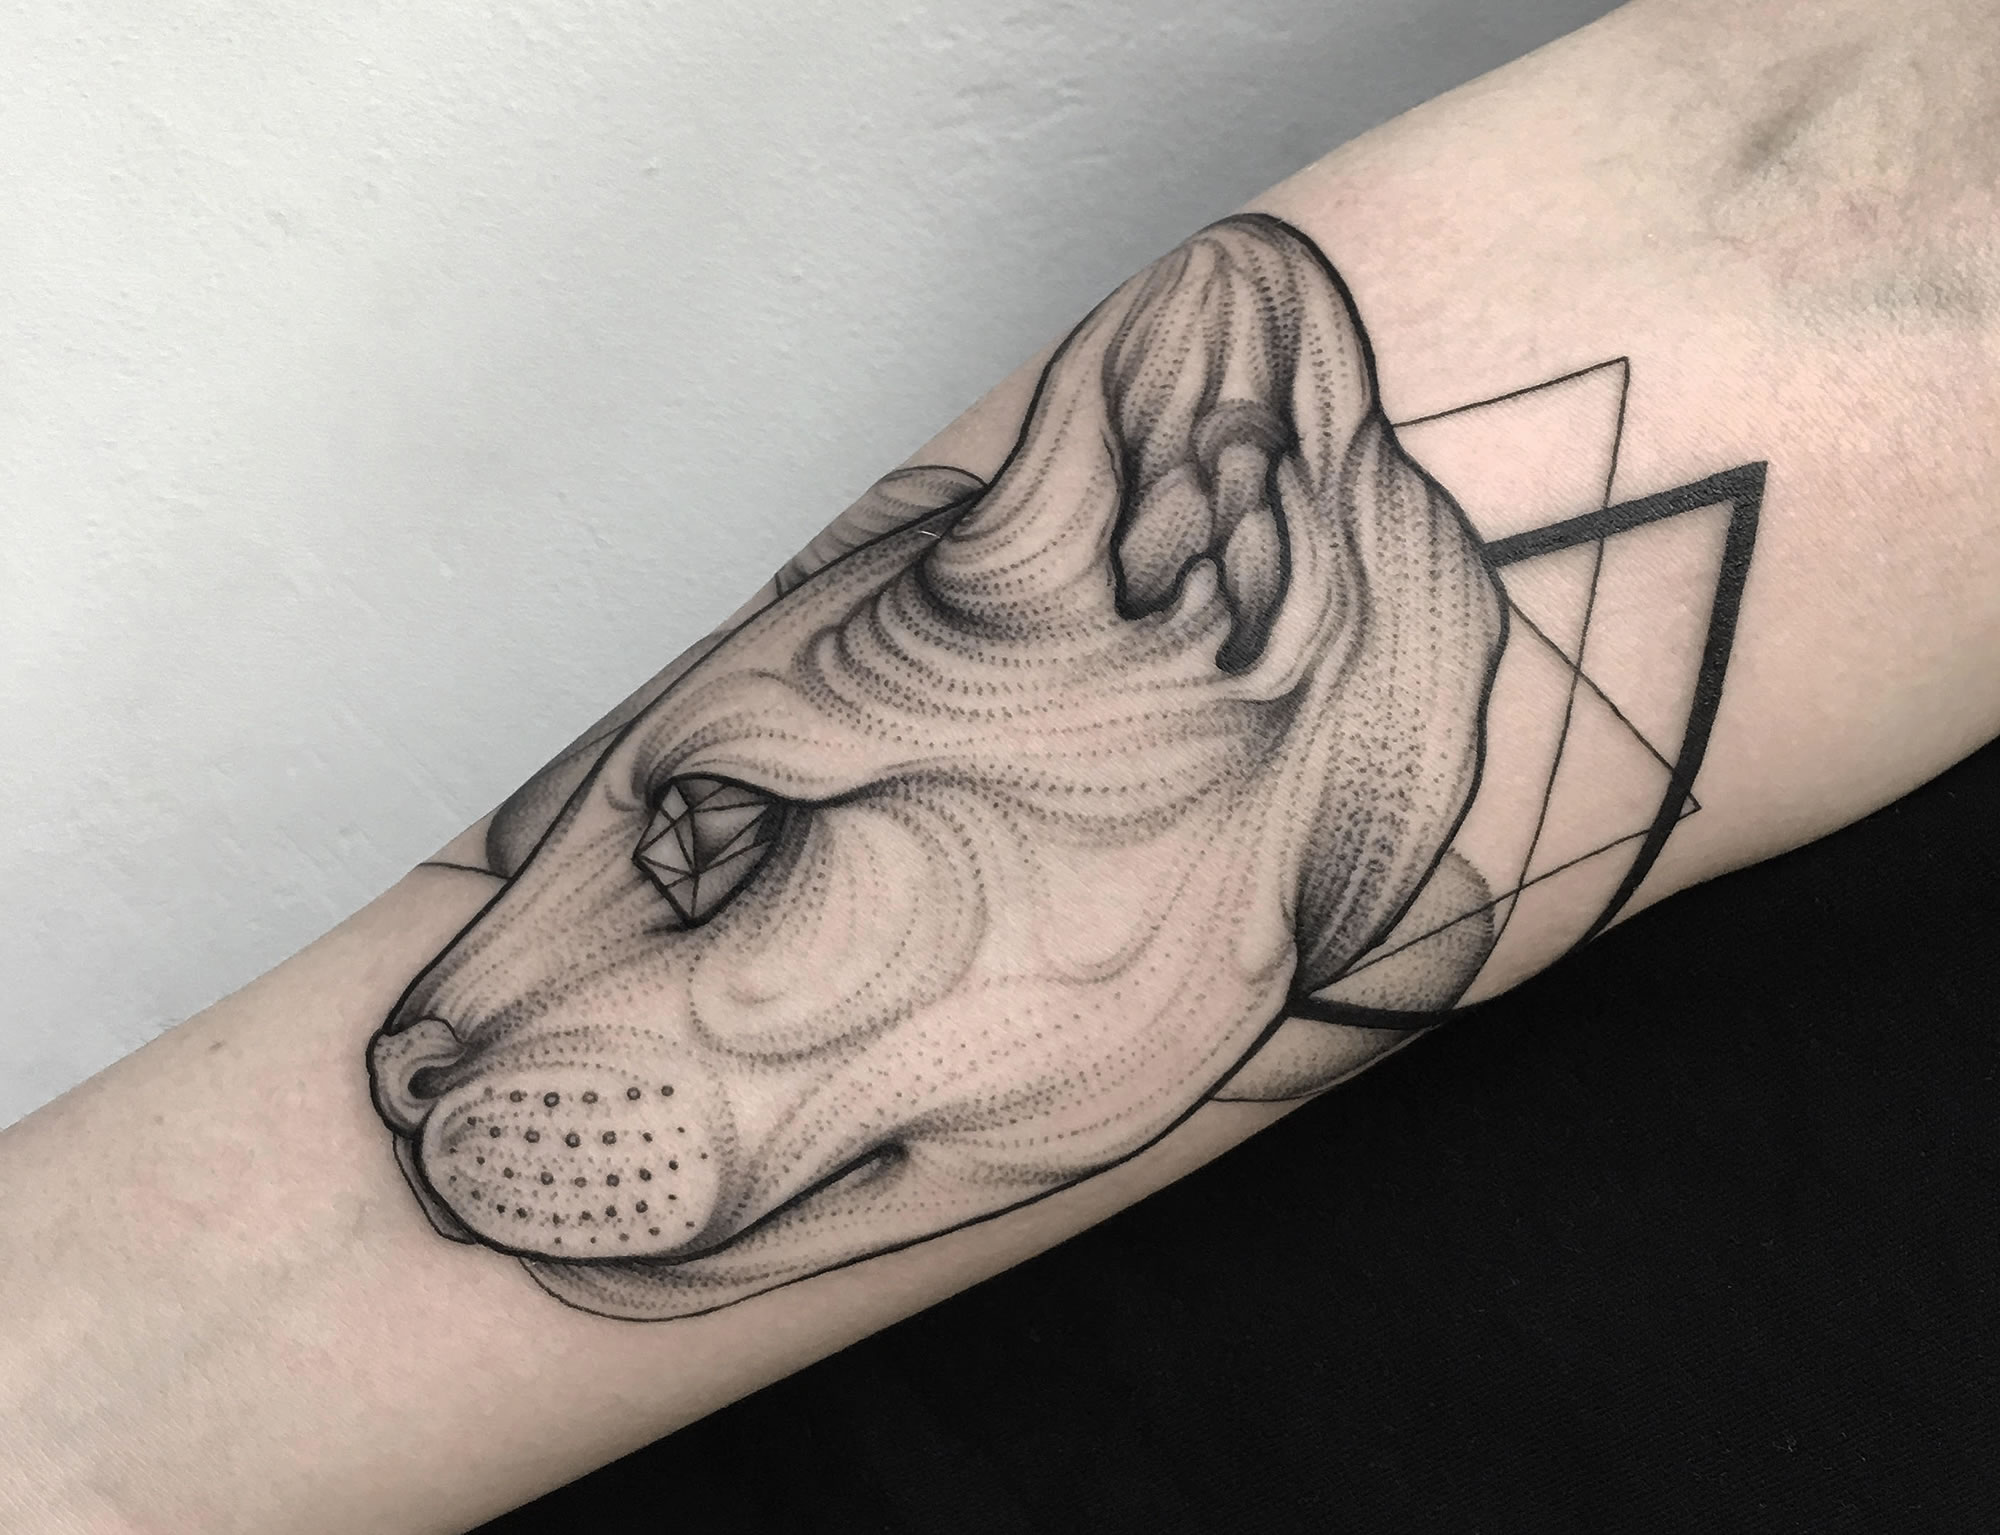 Foreboding Creature Tattoos are Modern Brothers Grimm